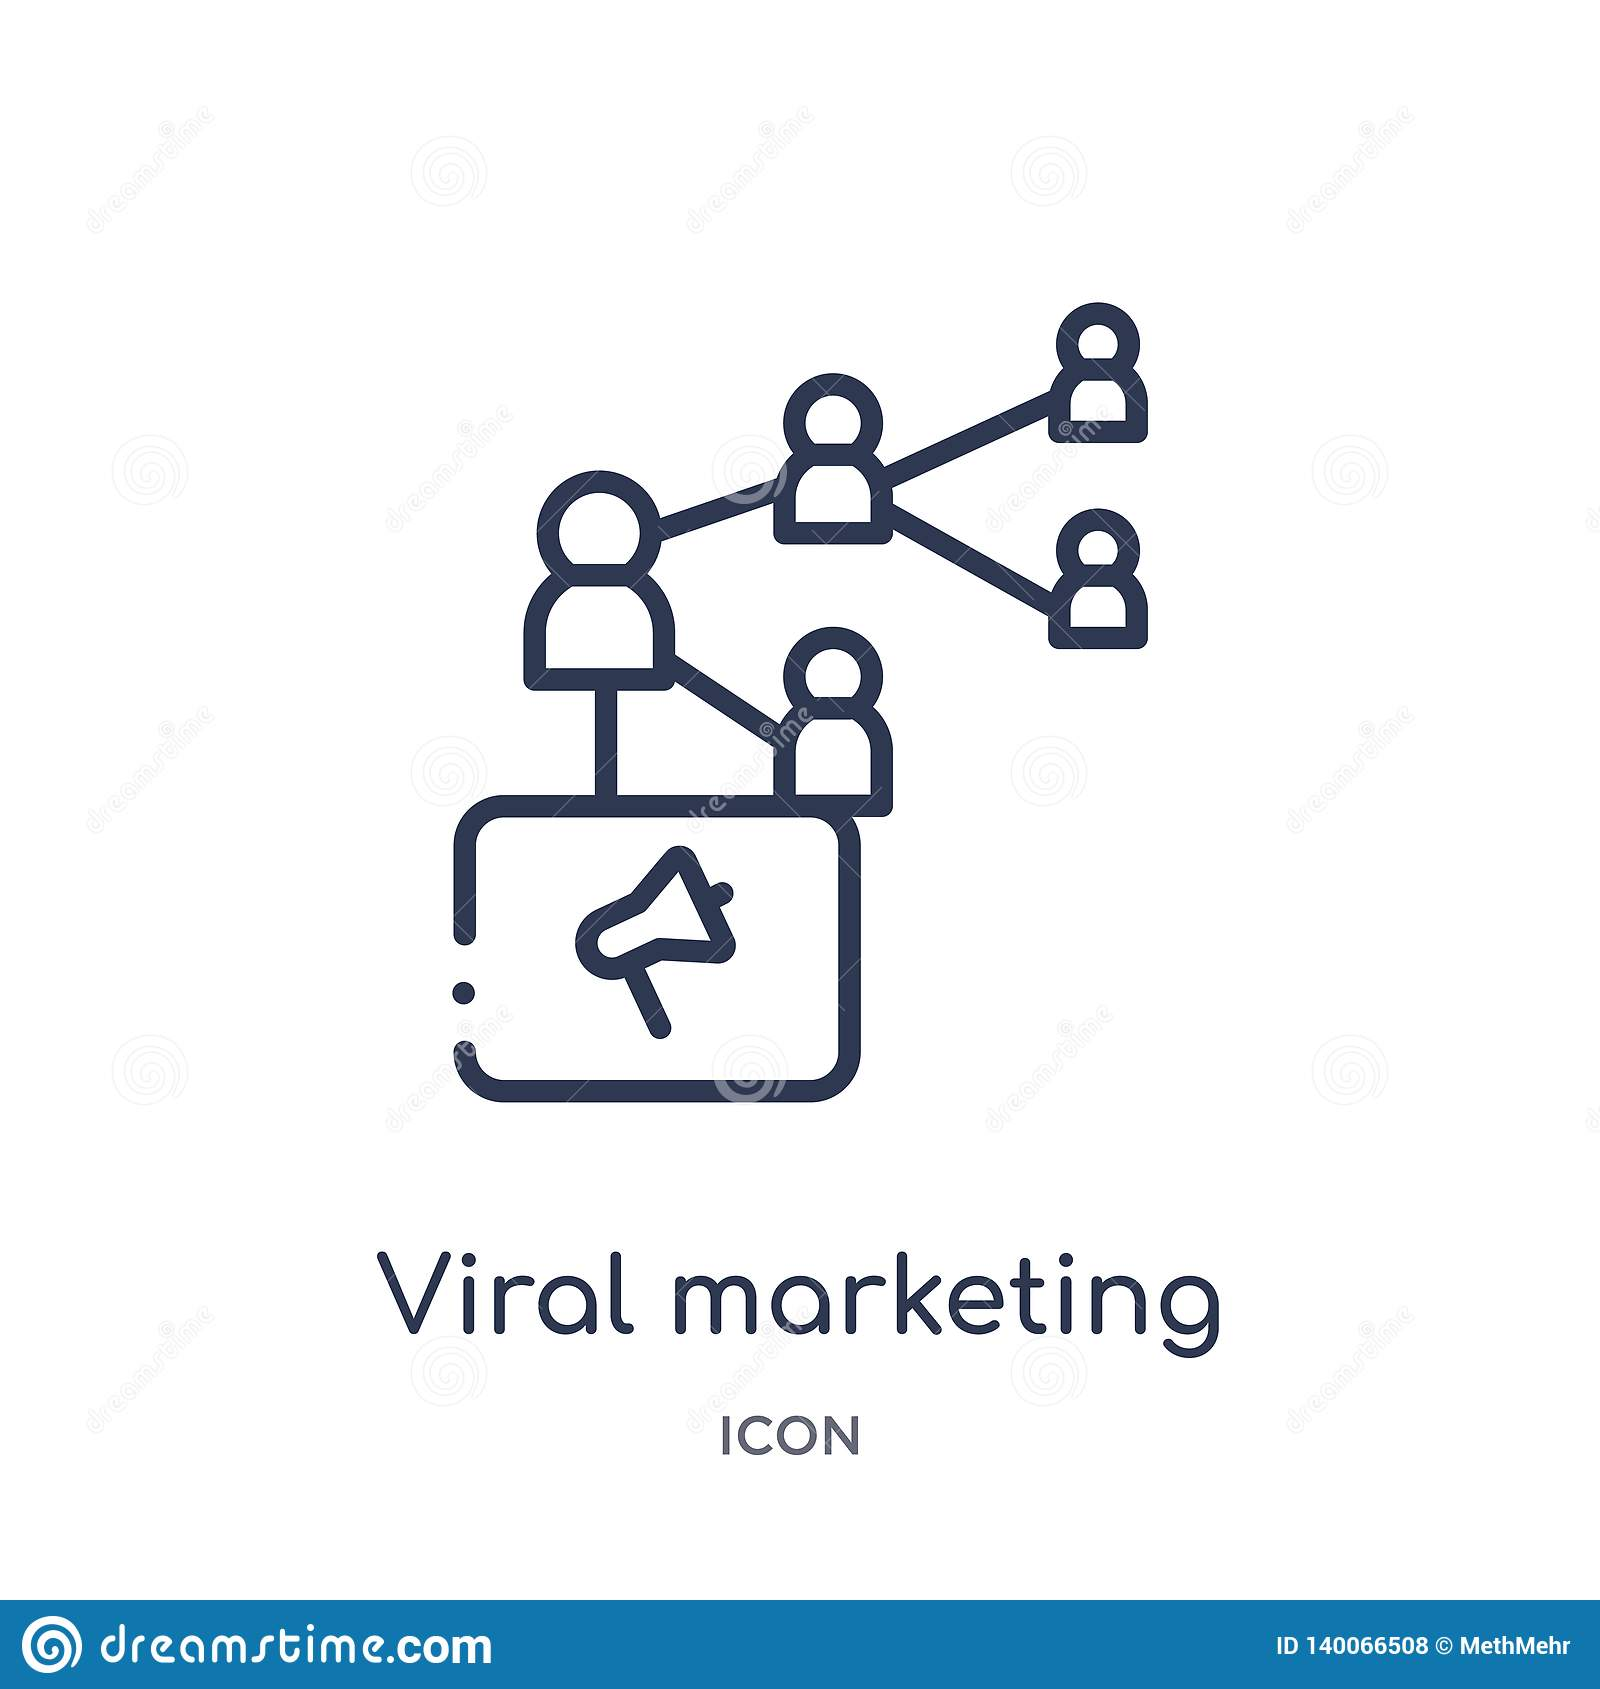 viral marketing icon from search engine optimization outline collection. Thin line viral marketing icon isolated on white